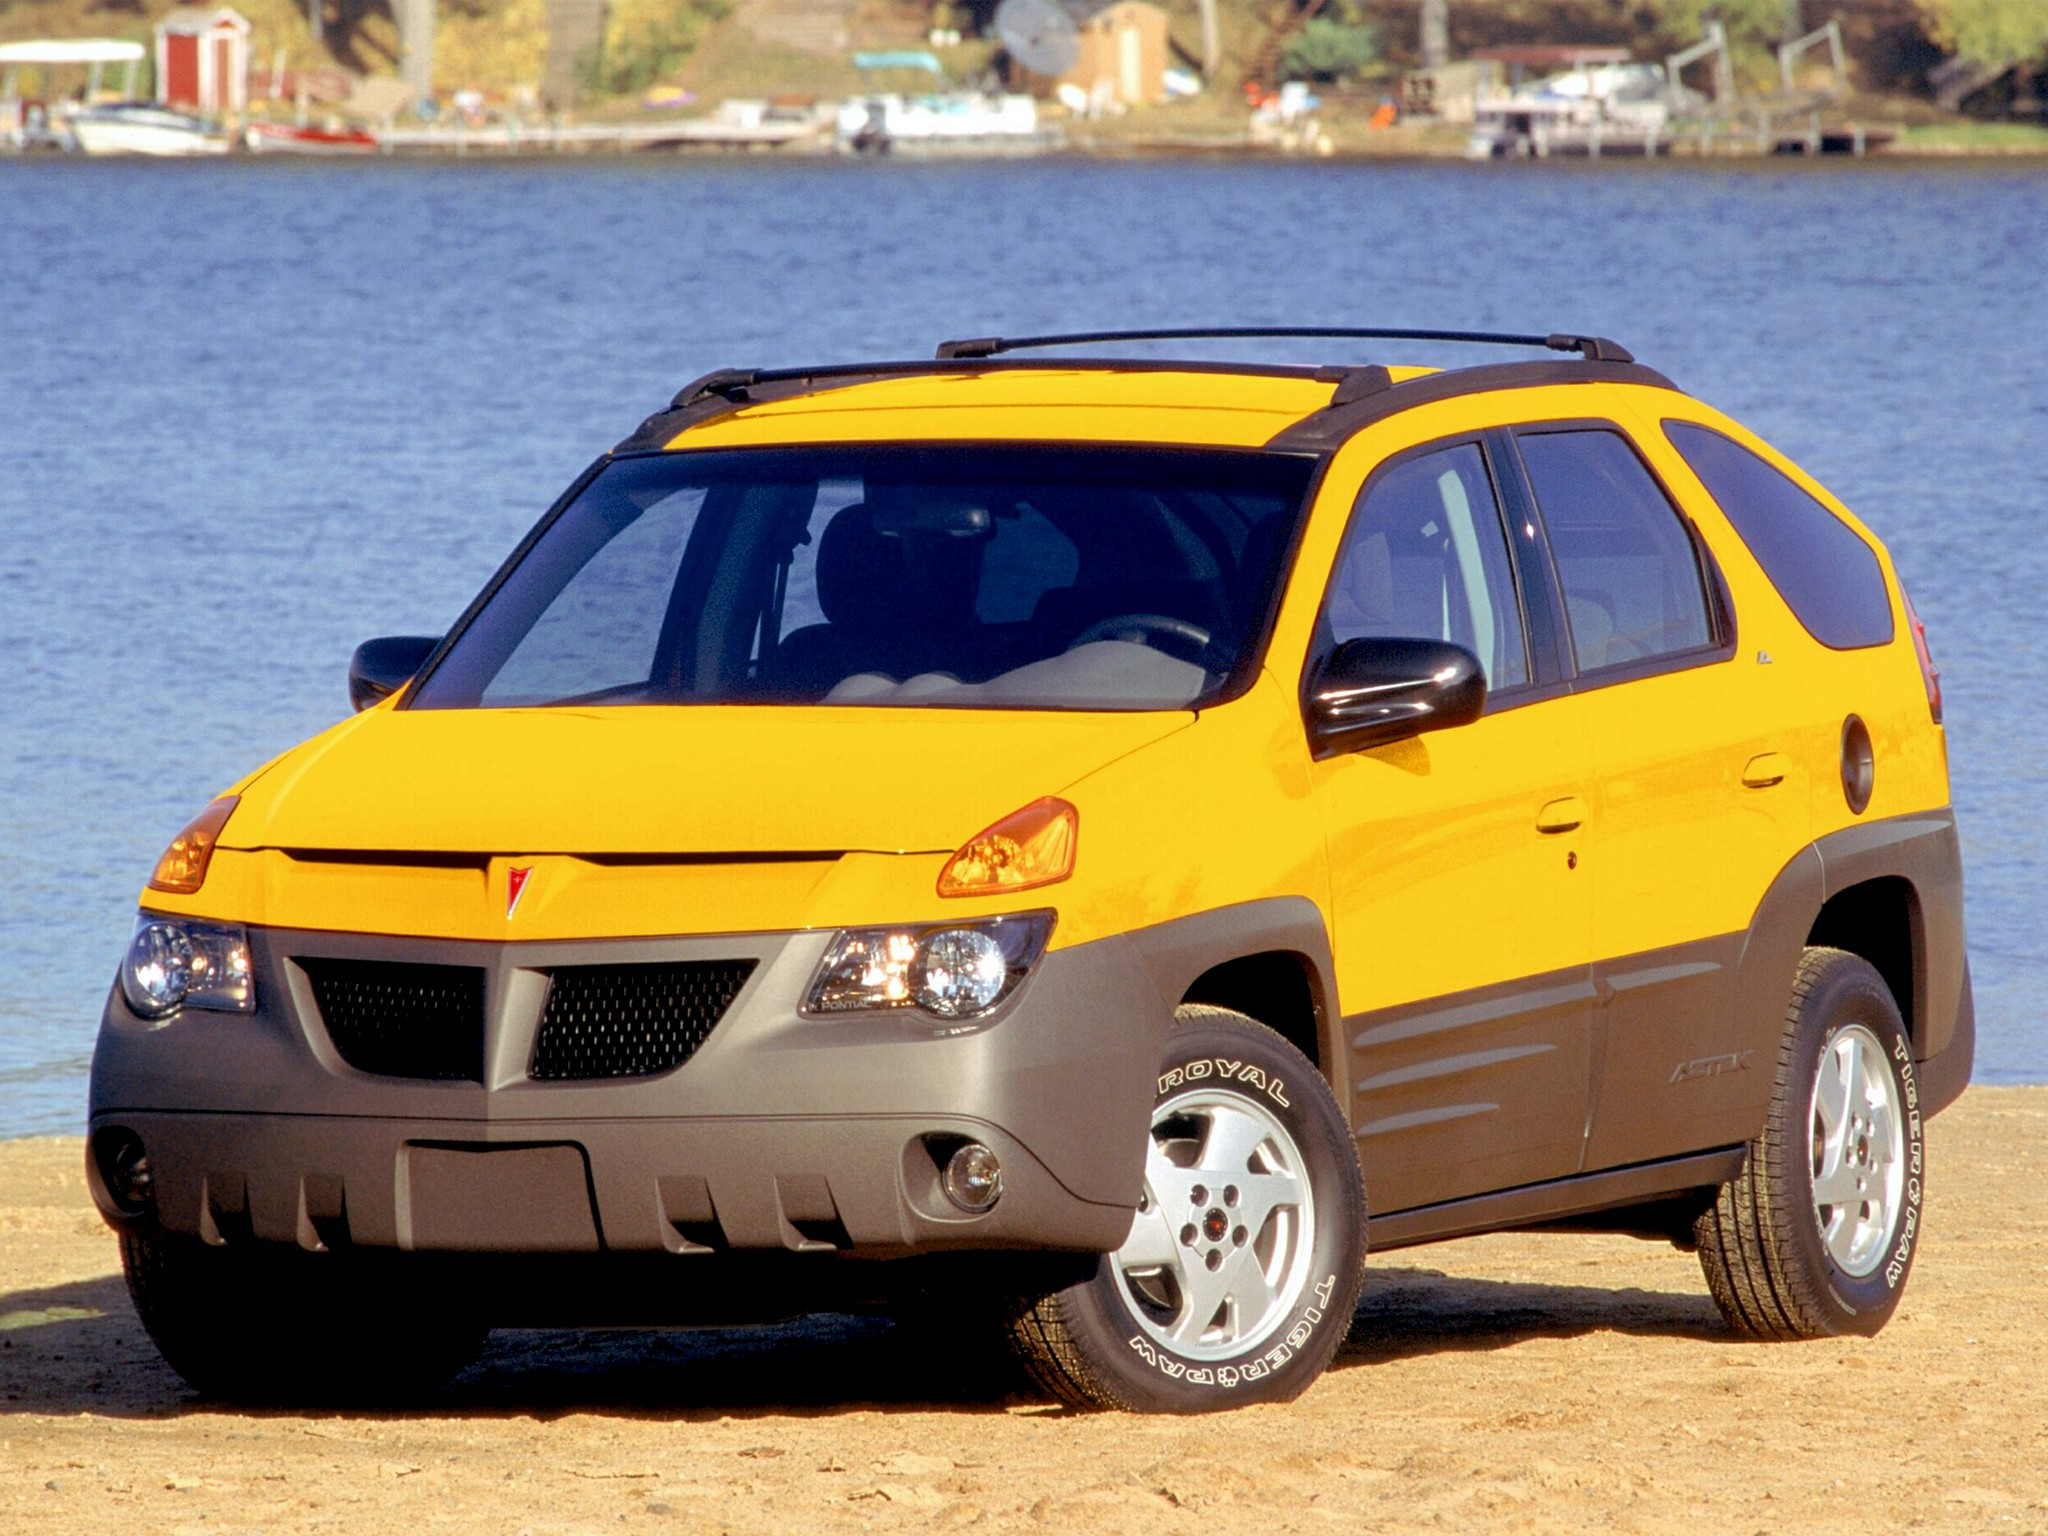 pontiac aztek 2000 2001 2002 2003 2004 2005 autoevolution. Black Bedroom Furniture Sets. Home Design Ideas